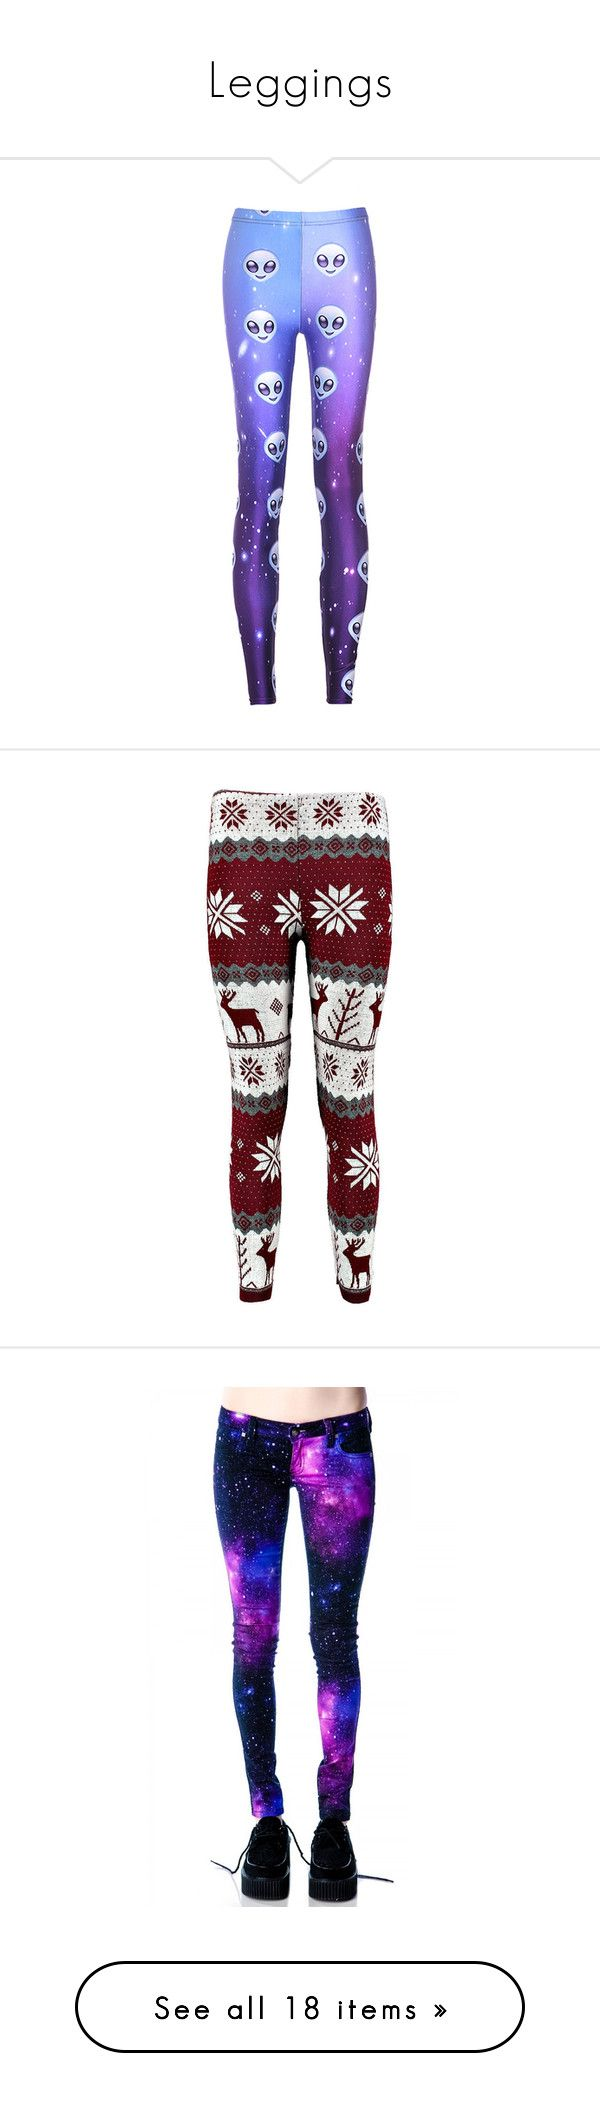 """""""Leggings"""" by rain-caniff-482 ❤ liked on Polyvore featuring pants, leggings, bottoms, purple skinny pants, stretch leggings, patterned pants, ombre pants, stretch skinny pants, jeans and red christmas leggings"""